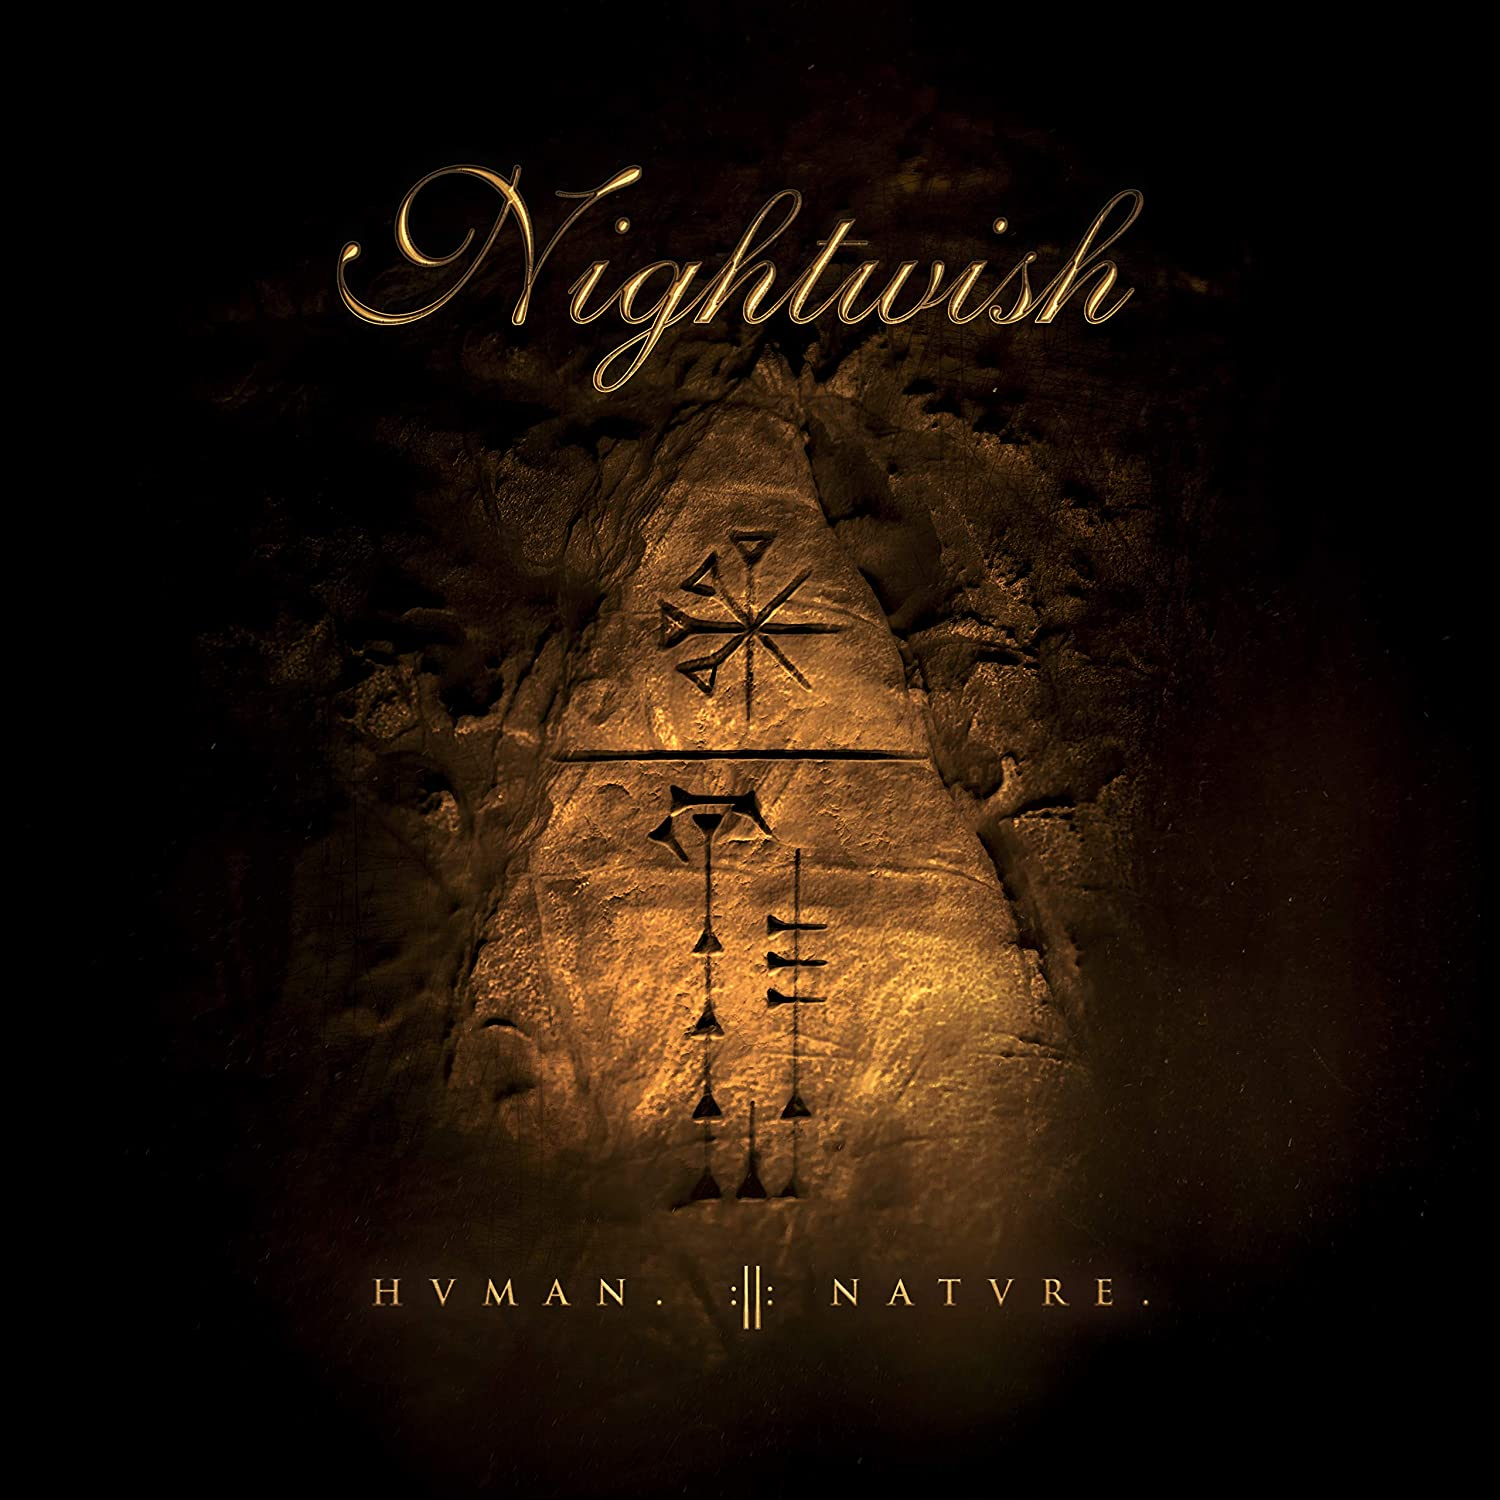 Nightwish - Human II Nature